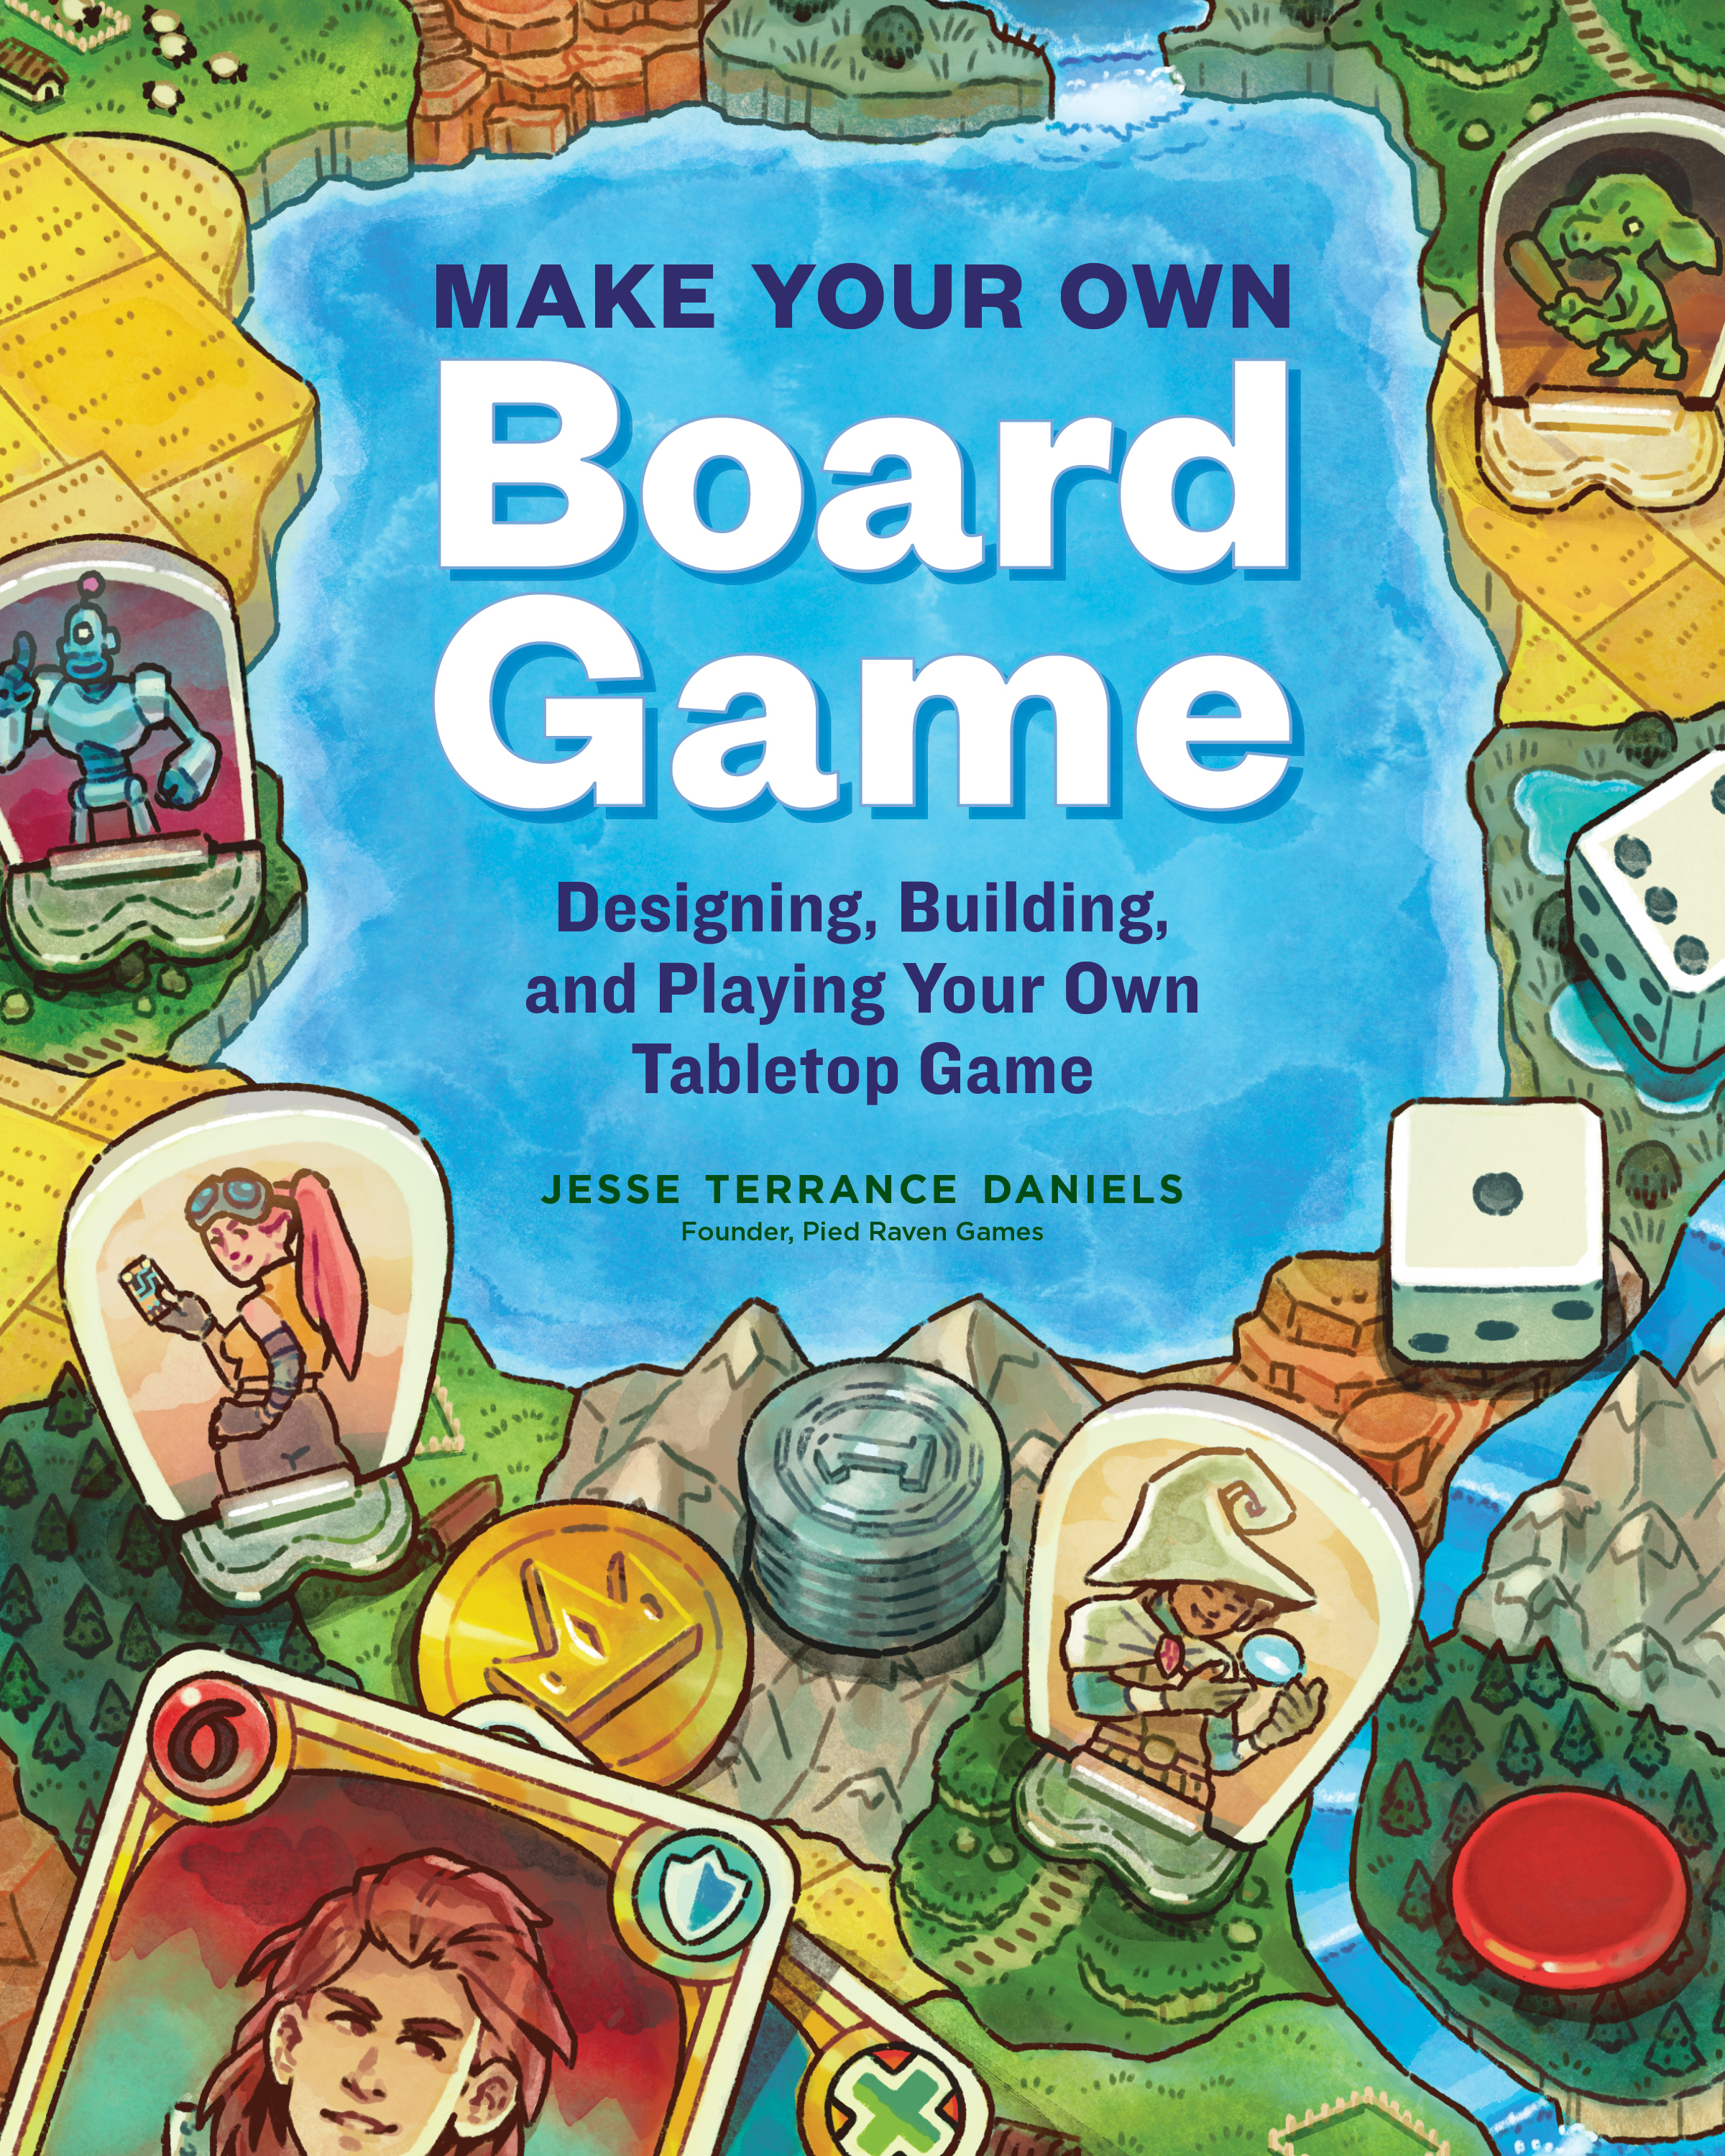 Make Your Own Board Game Designing, Building, and Playing Your Own Tabletop Game - Jesse Terrance Daniels